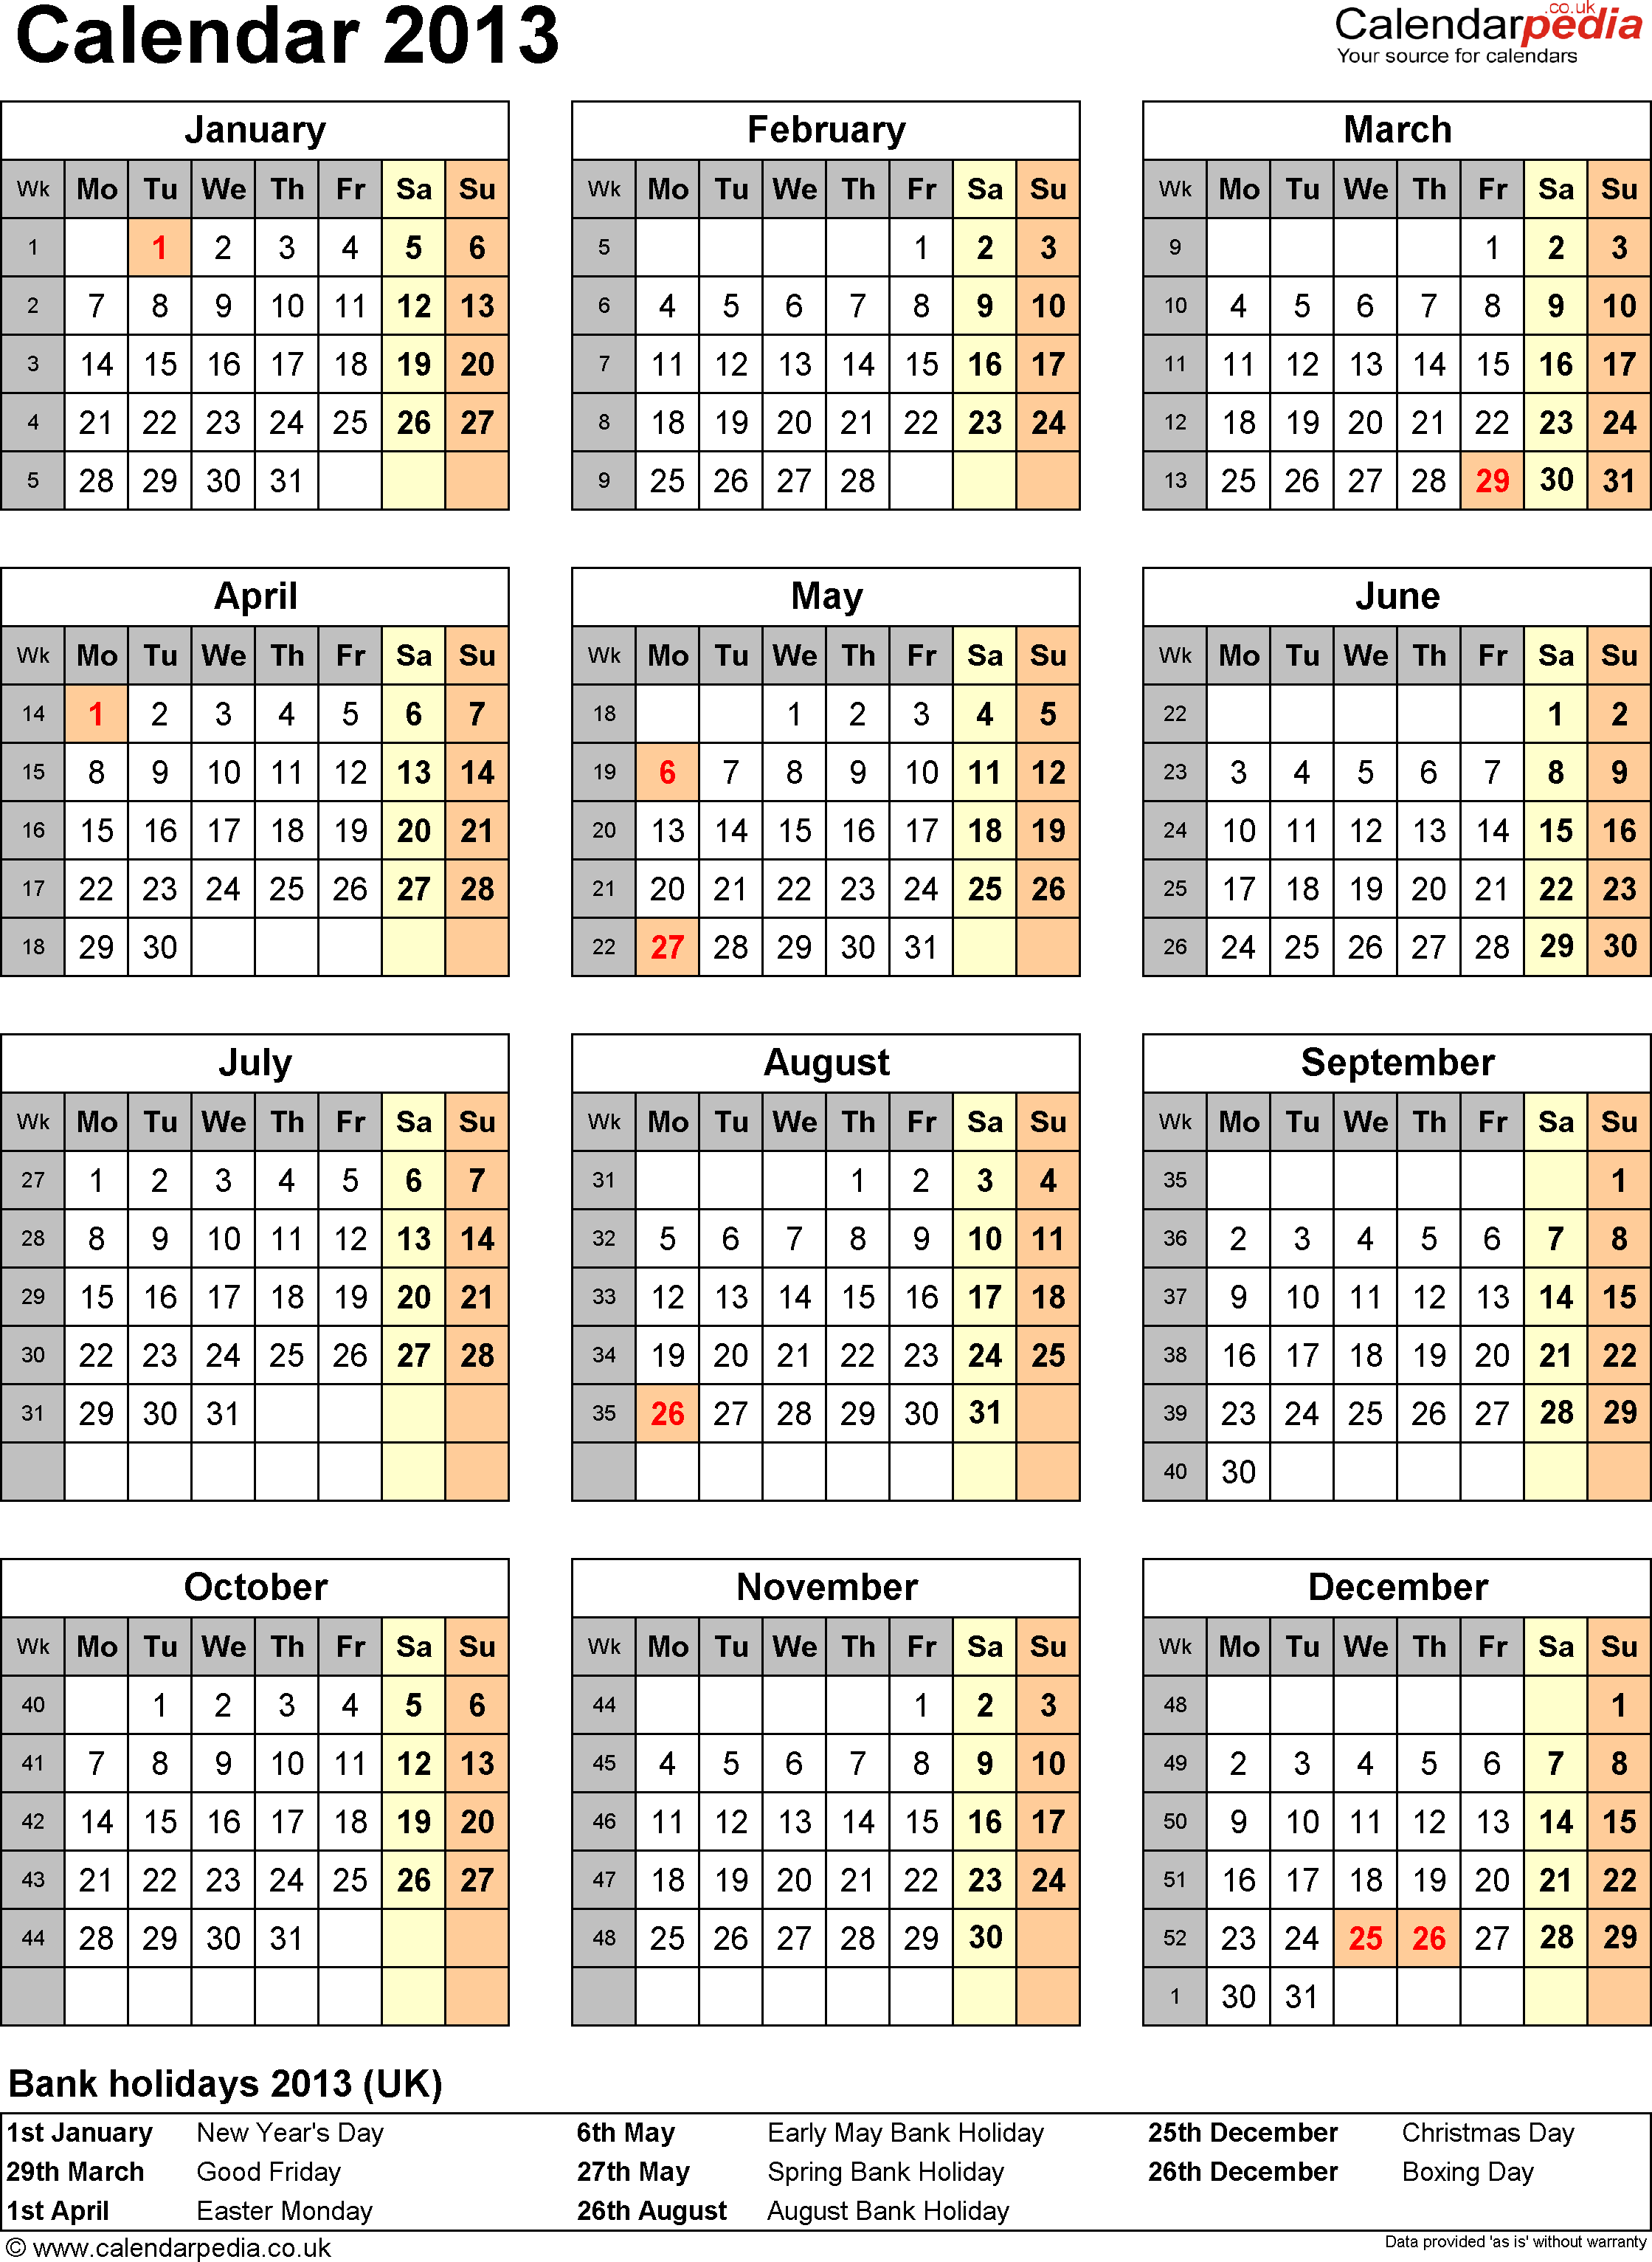 Template 11: Yearly calendar 2013 as Word template, portrait orientation, 1 A4 page